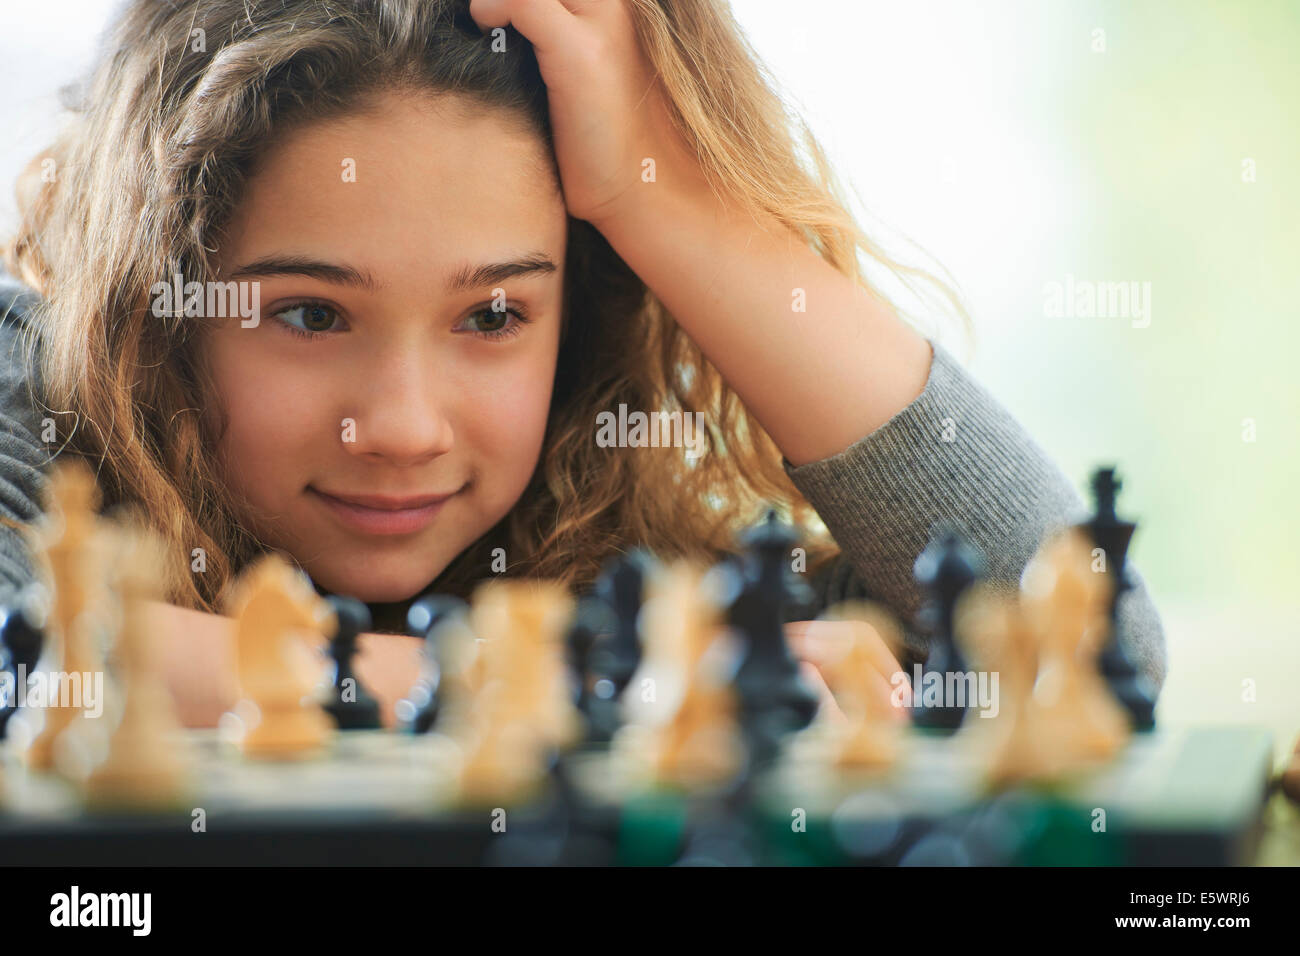 Portrait of young girl playing chess Photo Stock